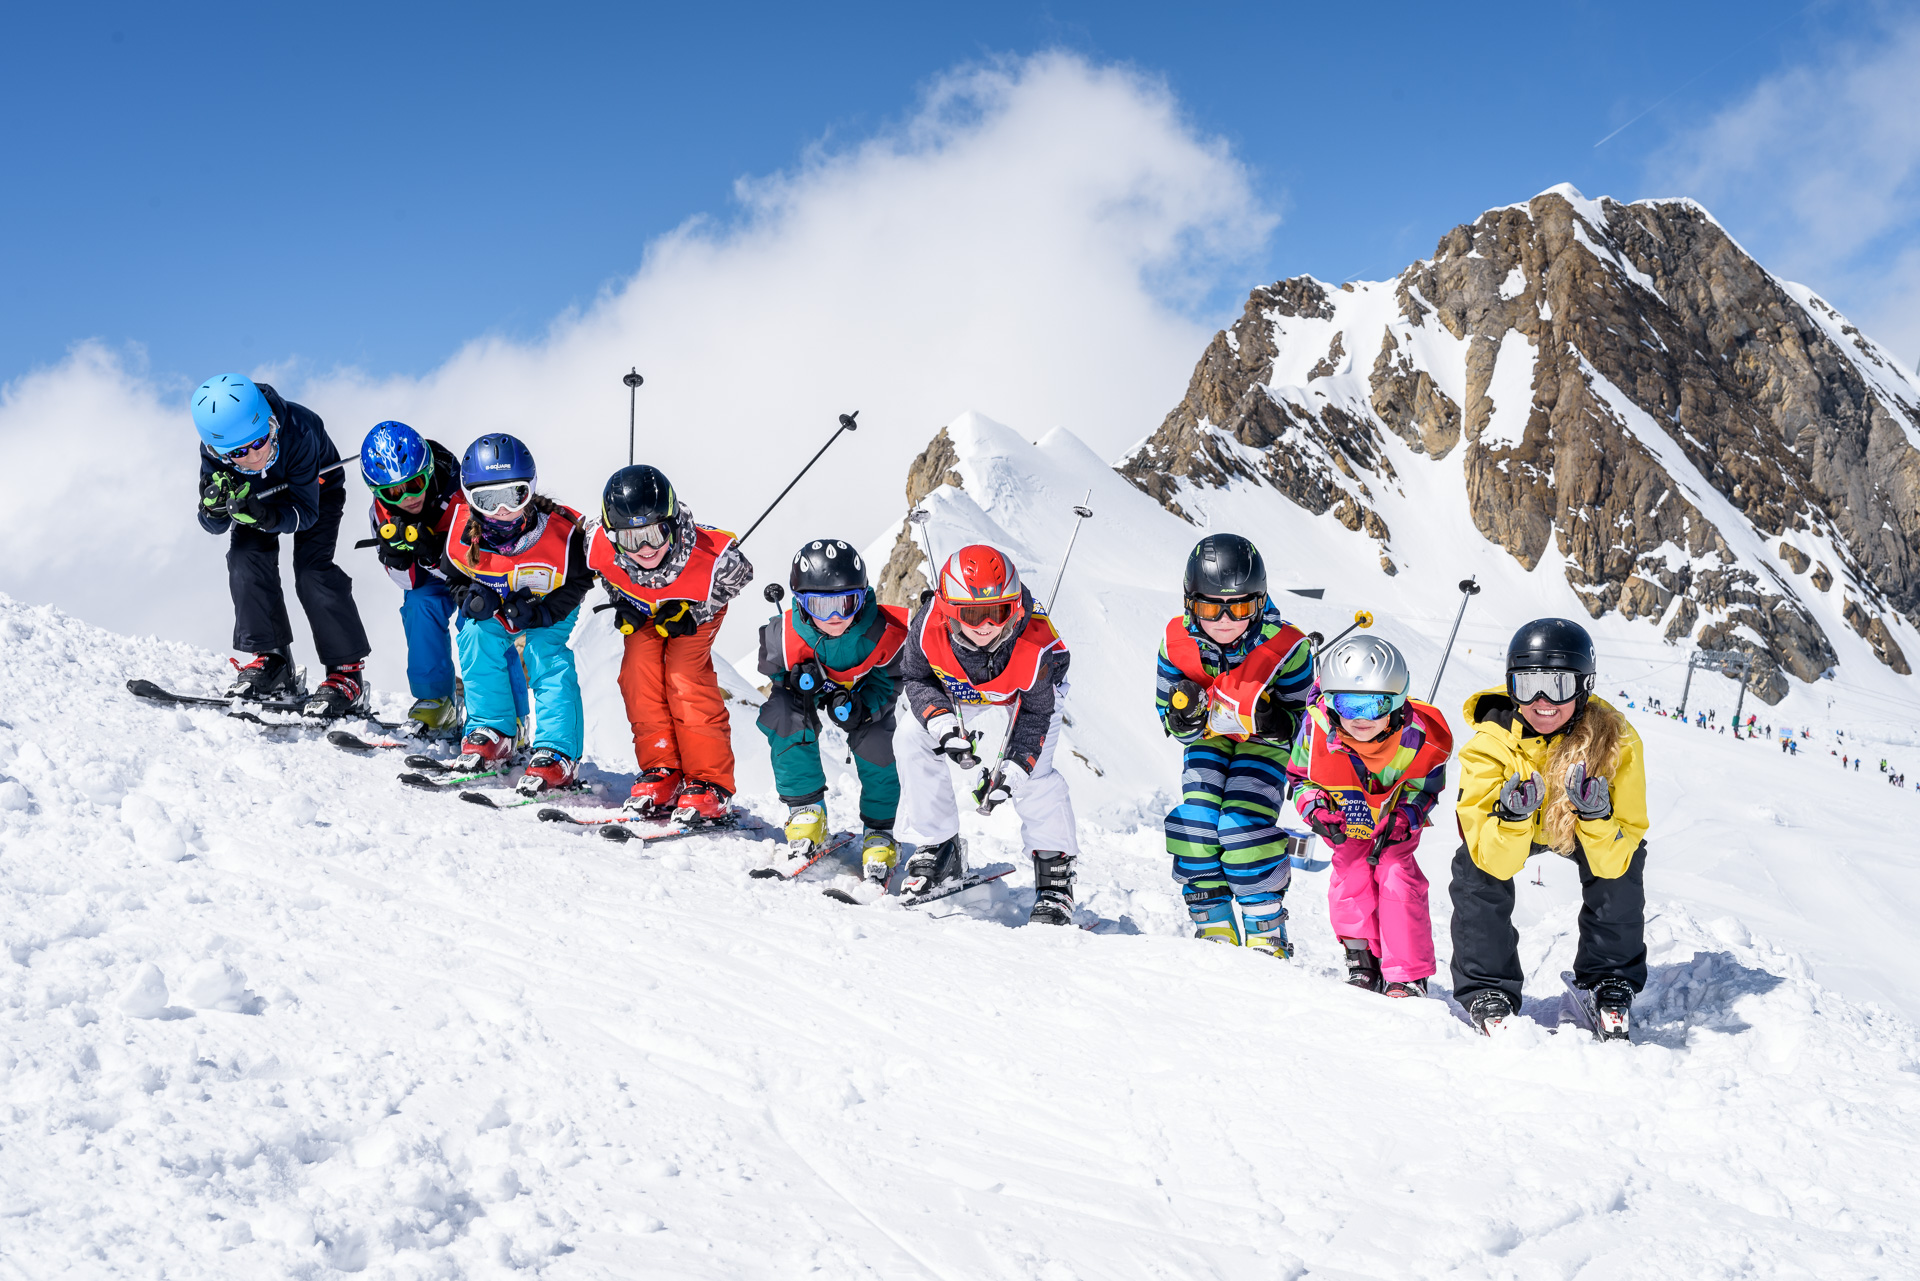 Ski 3 Tage/Days - Kurs/Course, Kind/Child